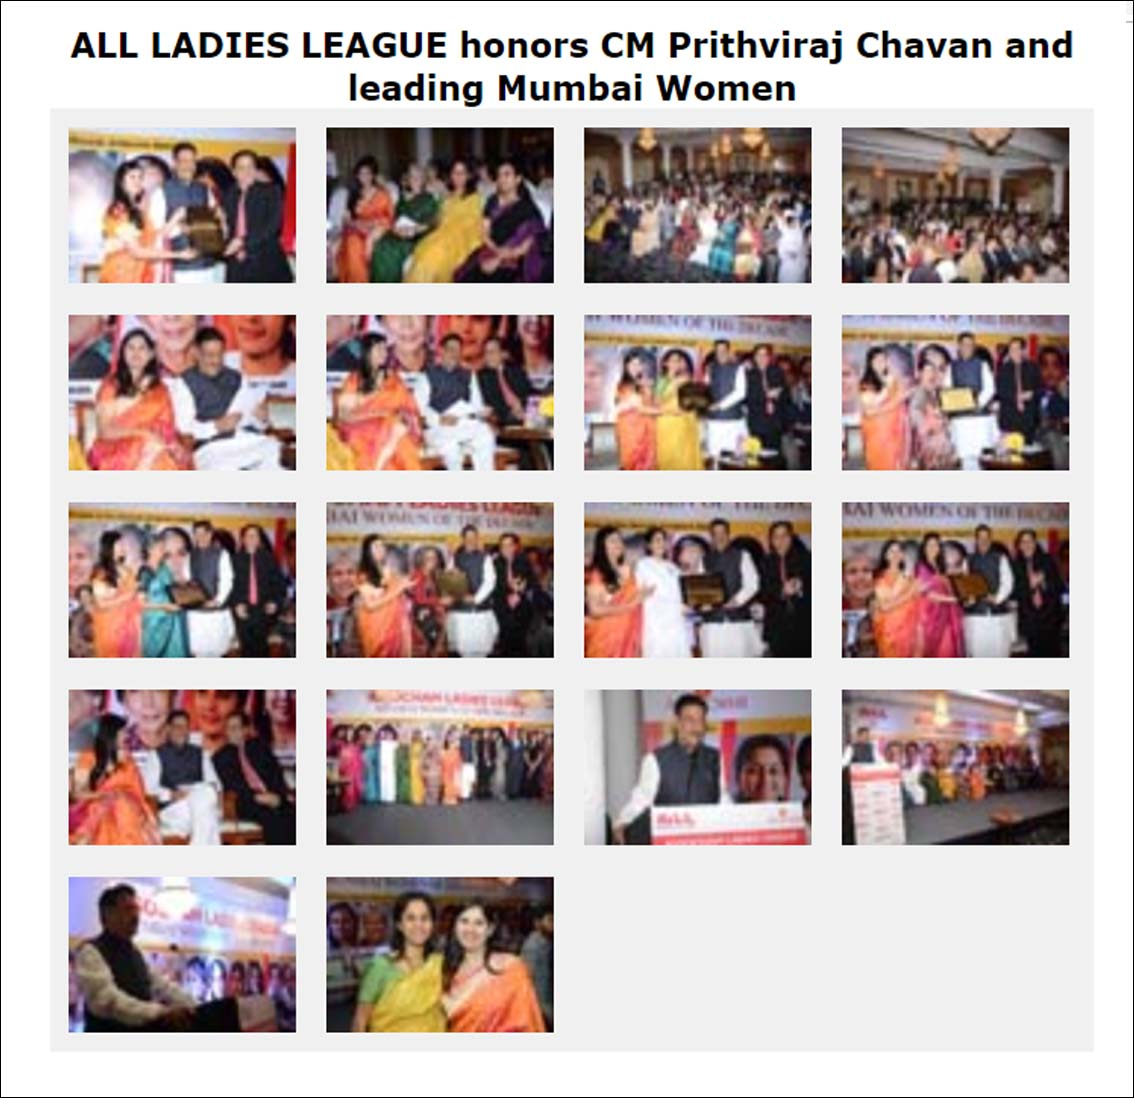 ALL LADIES LEAGUE honors CM Prithviraj Chavan and leading Mumbai Women, Harbeen Arora  - January 2014